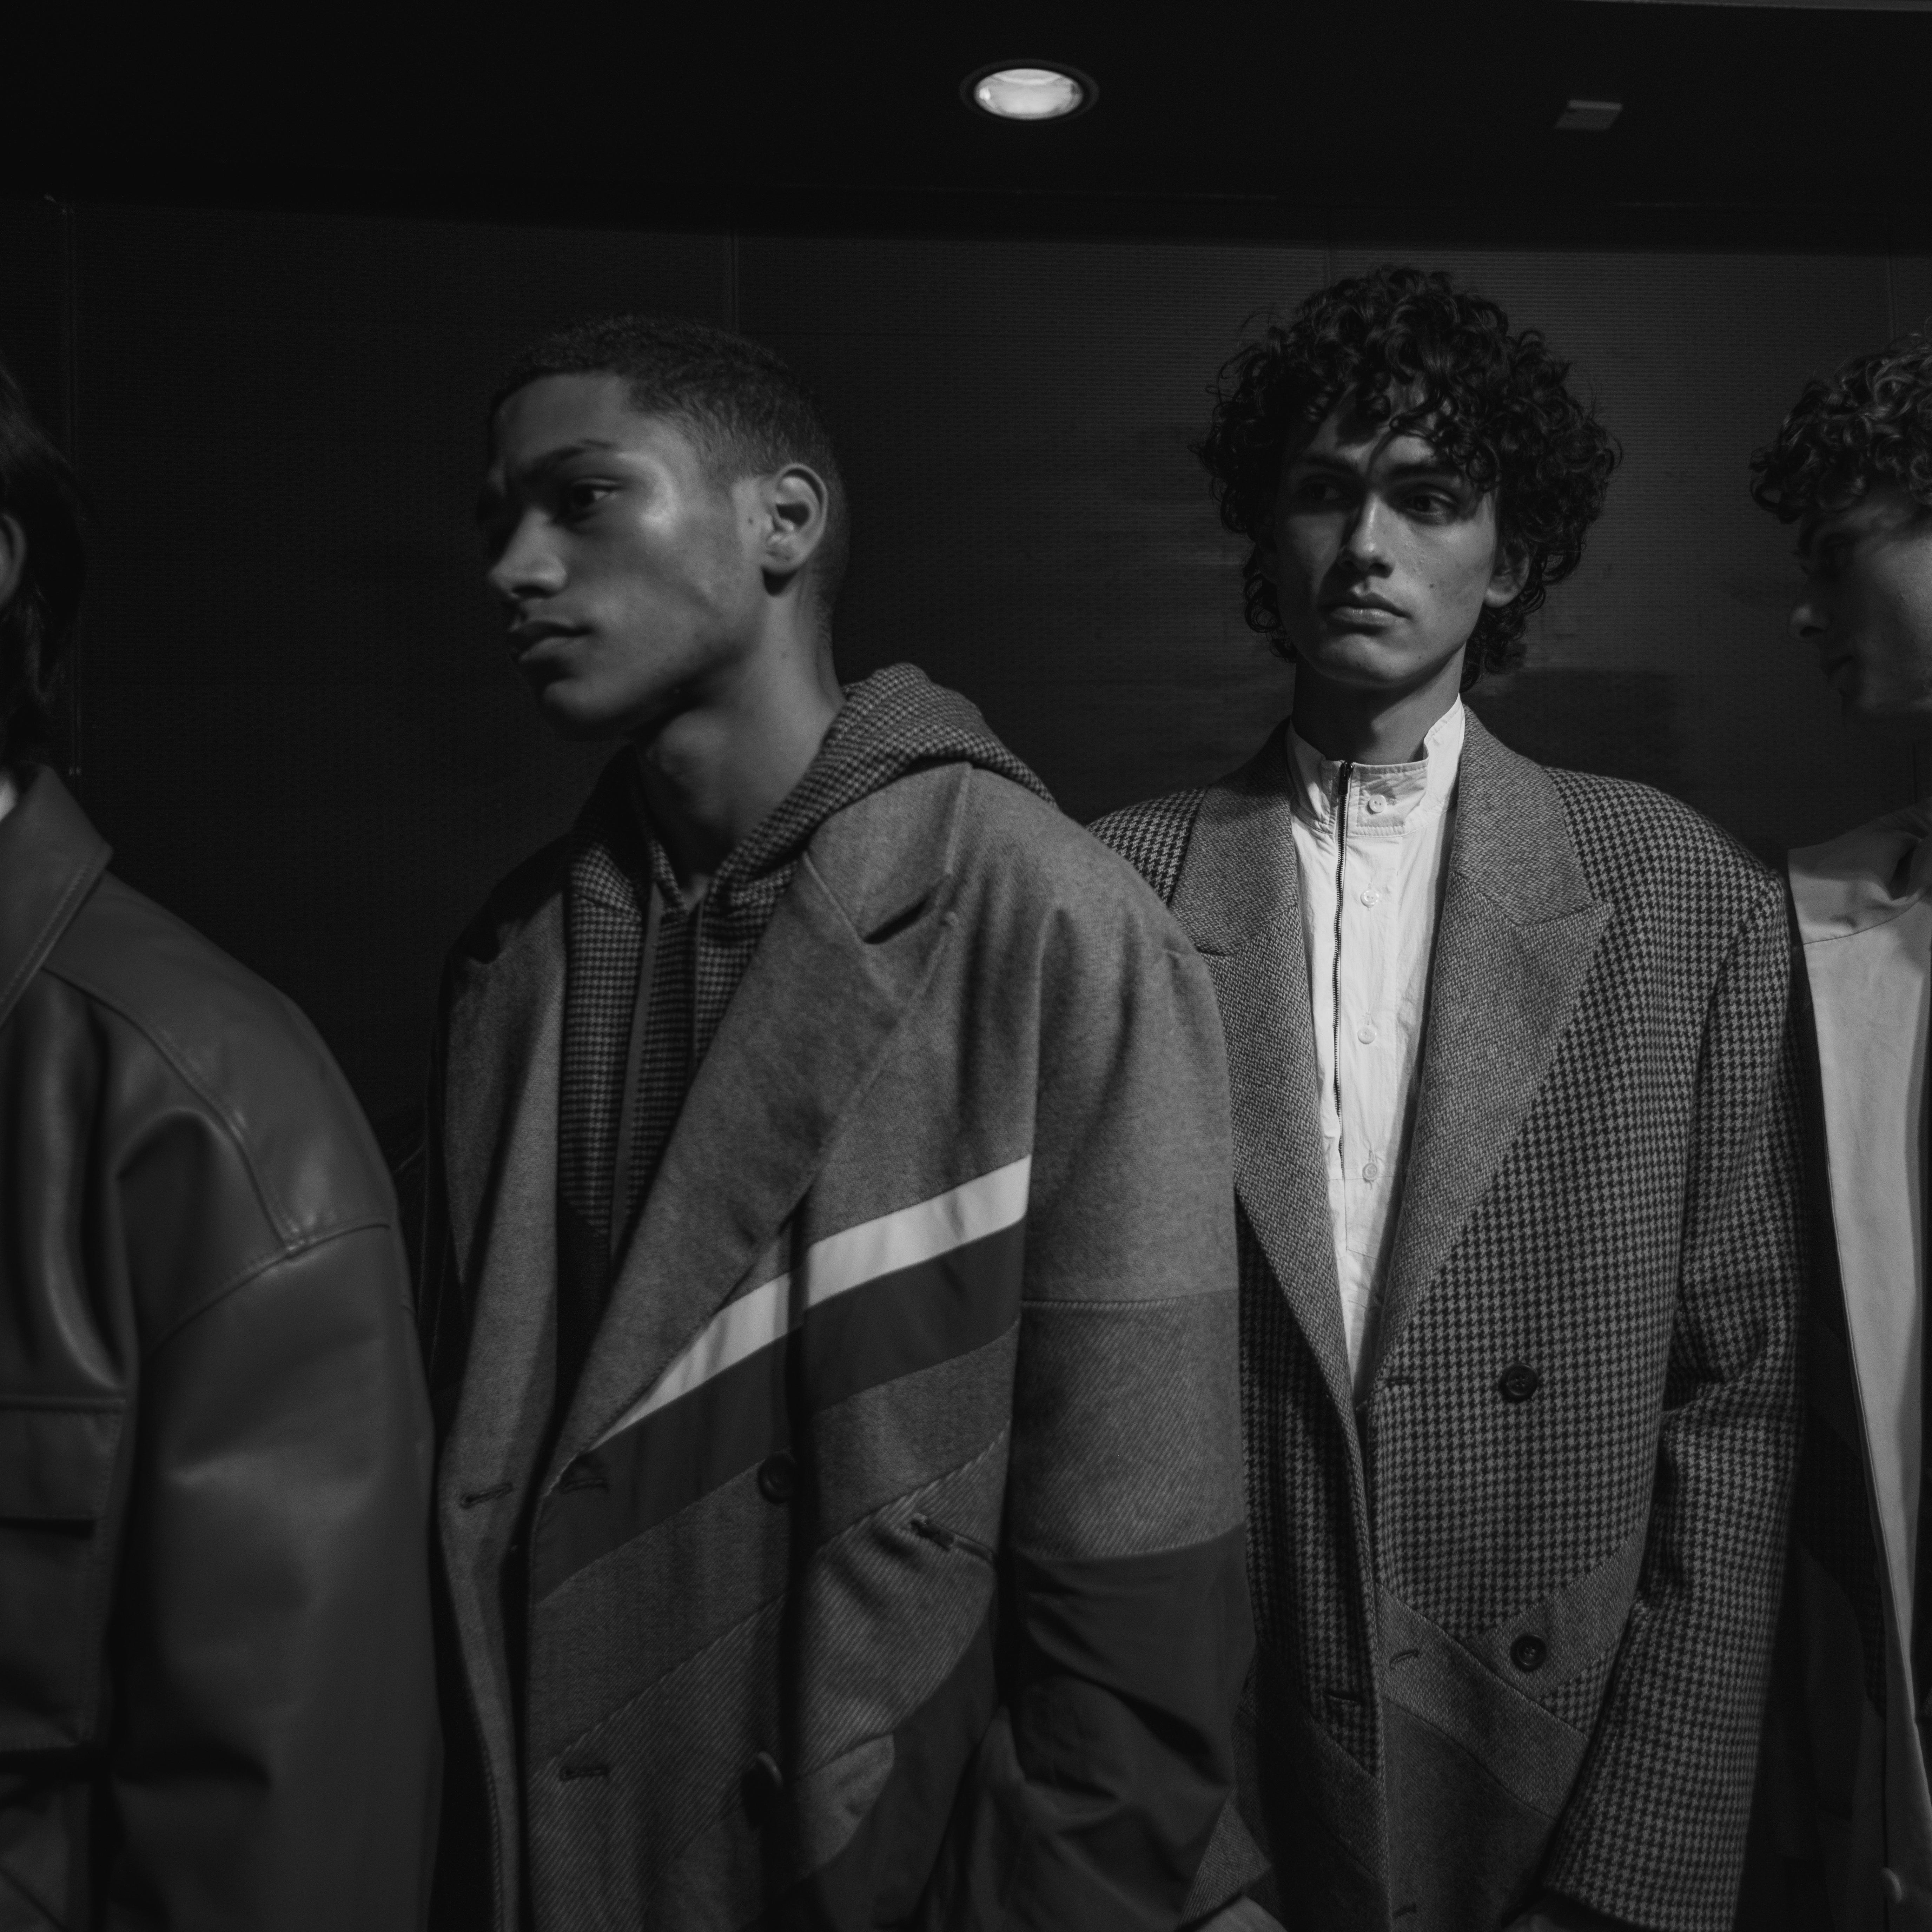 Menswear models backstage at the MA20 Catwalk Show